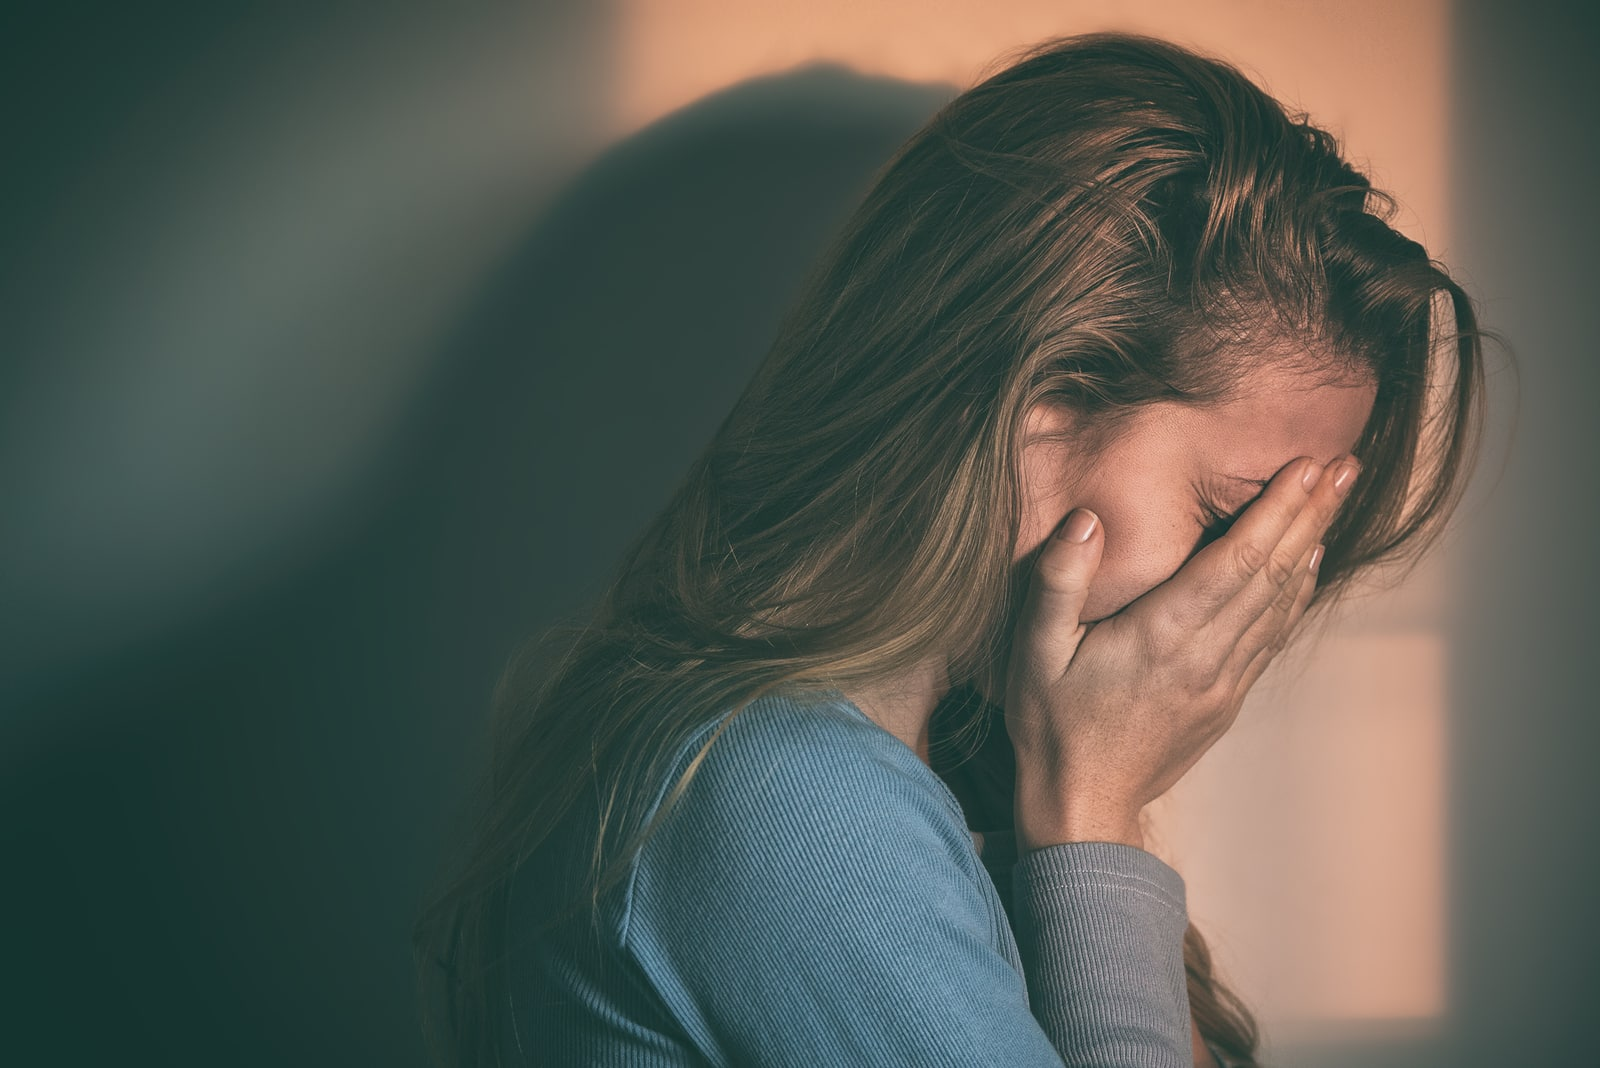 sad young woman holding hands on her face